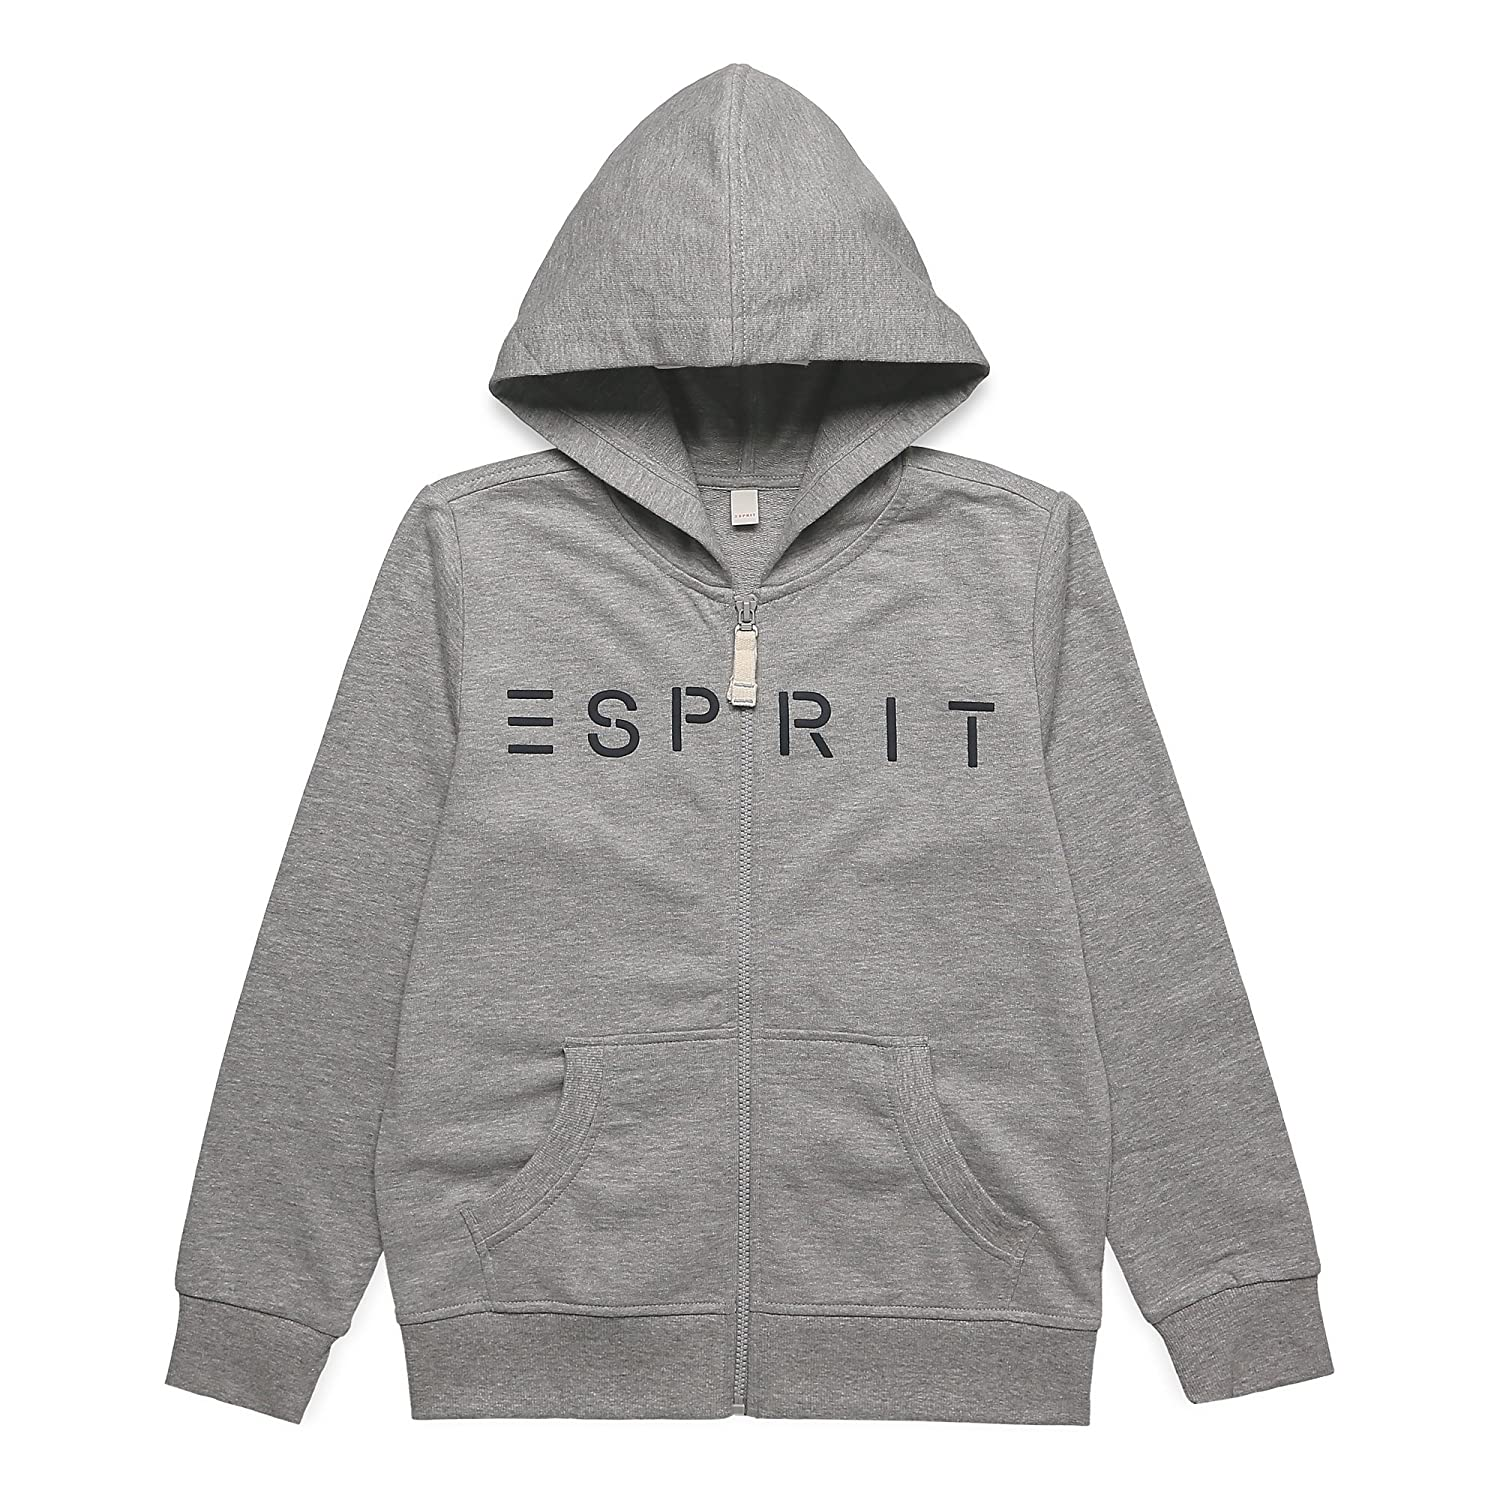 ESPRIT KIDS Jungen Strickjacke Grau (Mid Heather Grey 260) RK17026